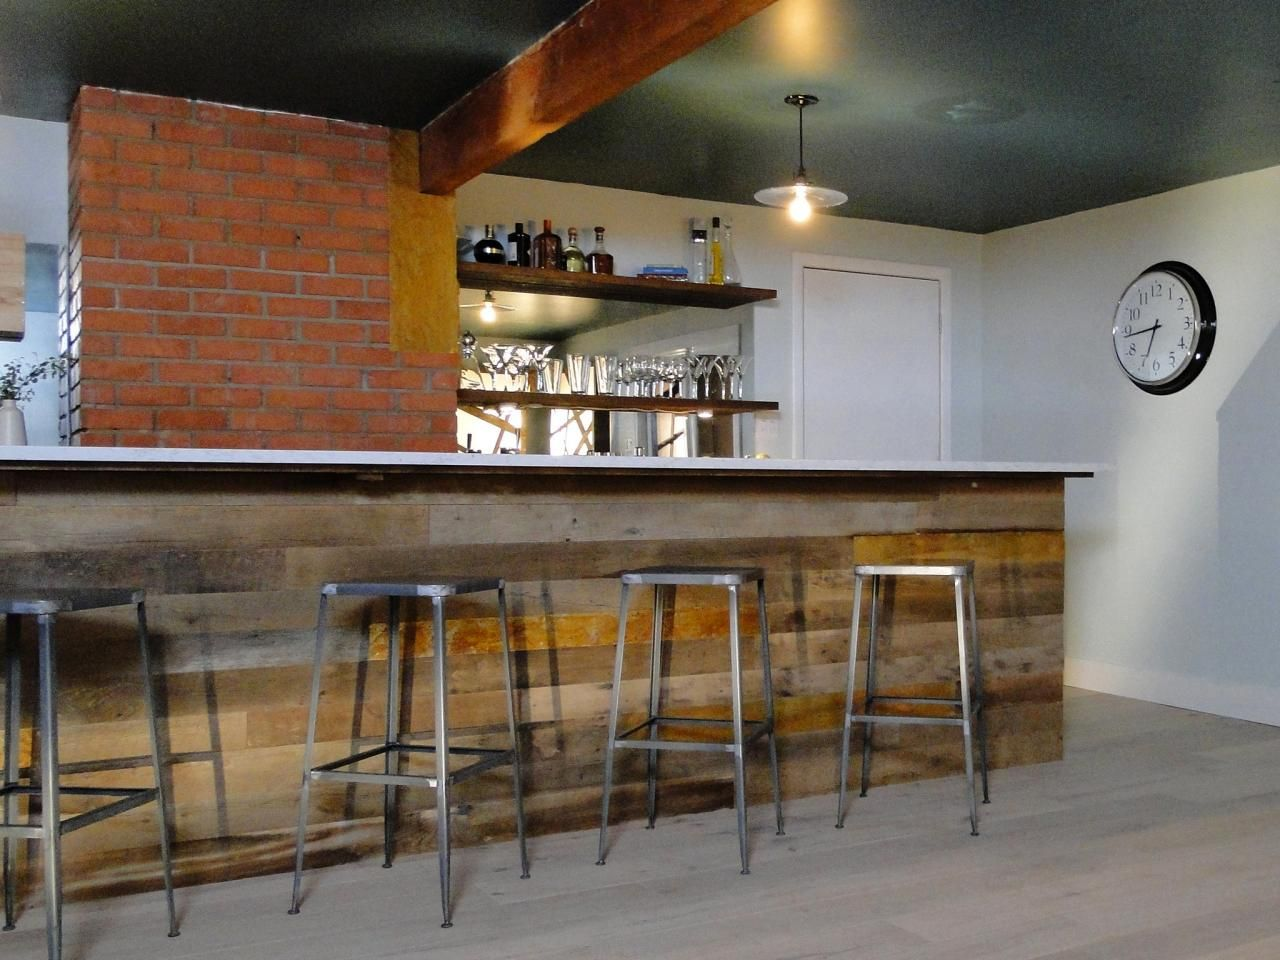 & Clever Basement Bar Ideas: Making Your Basement Bar Shine